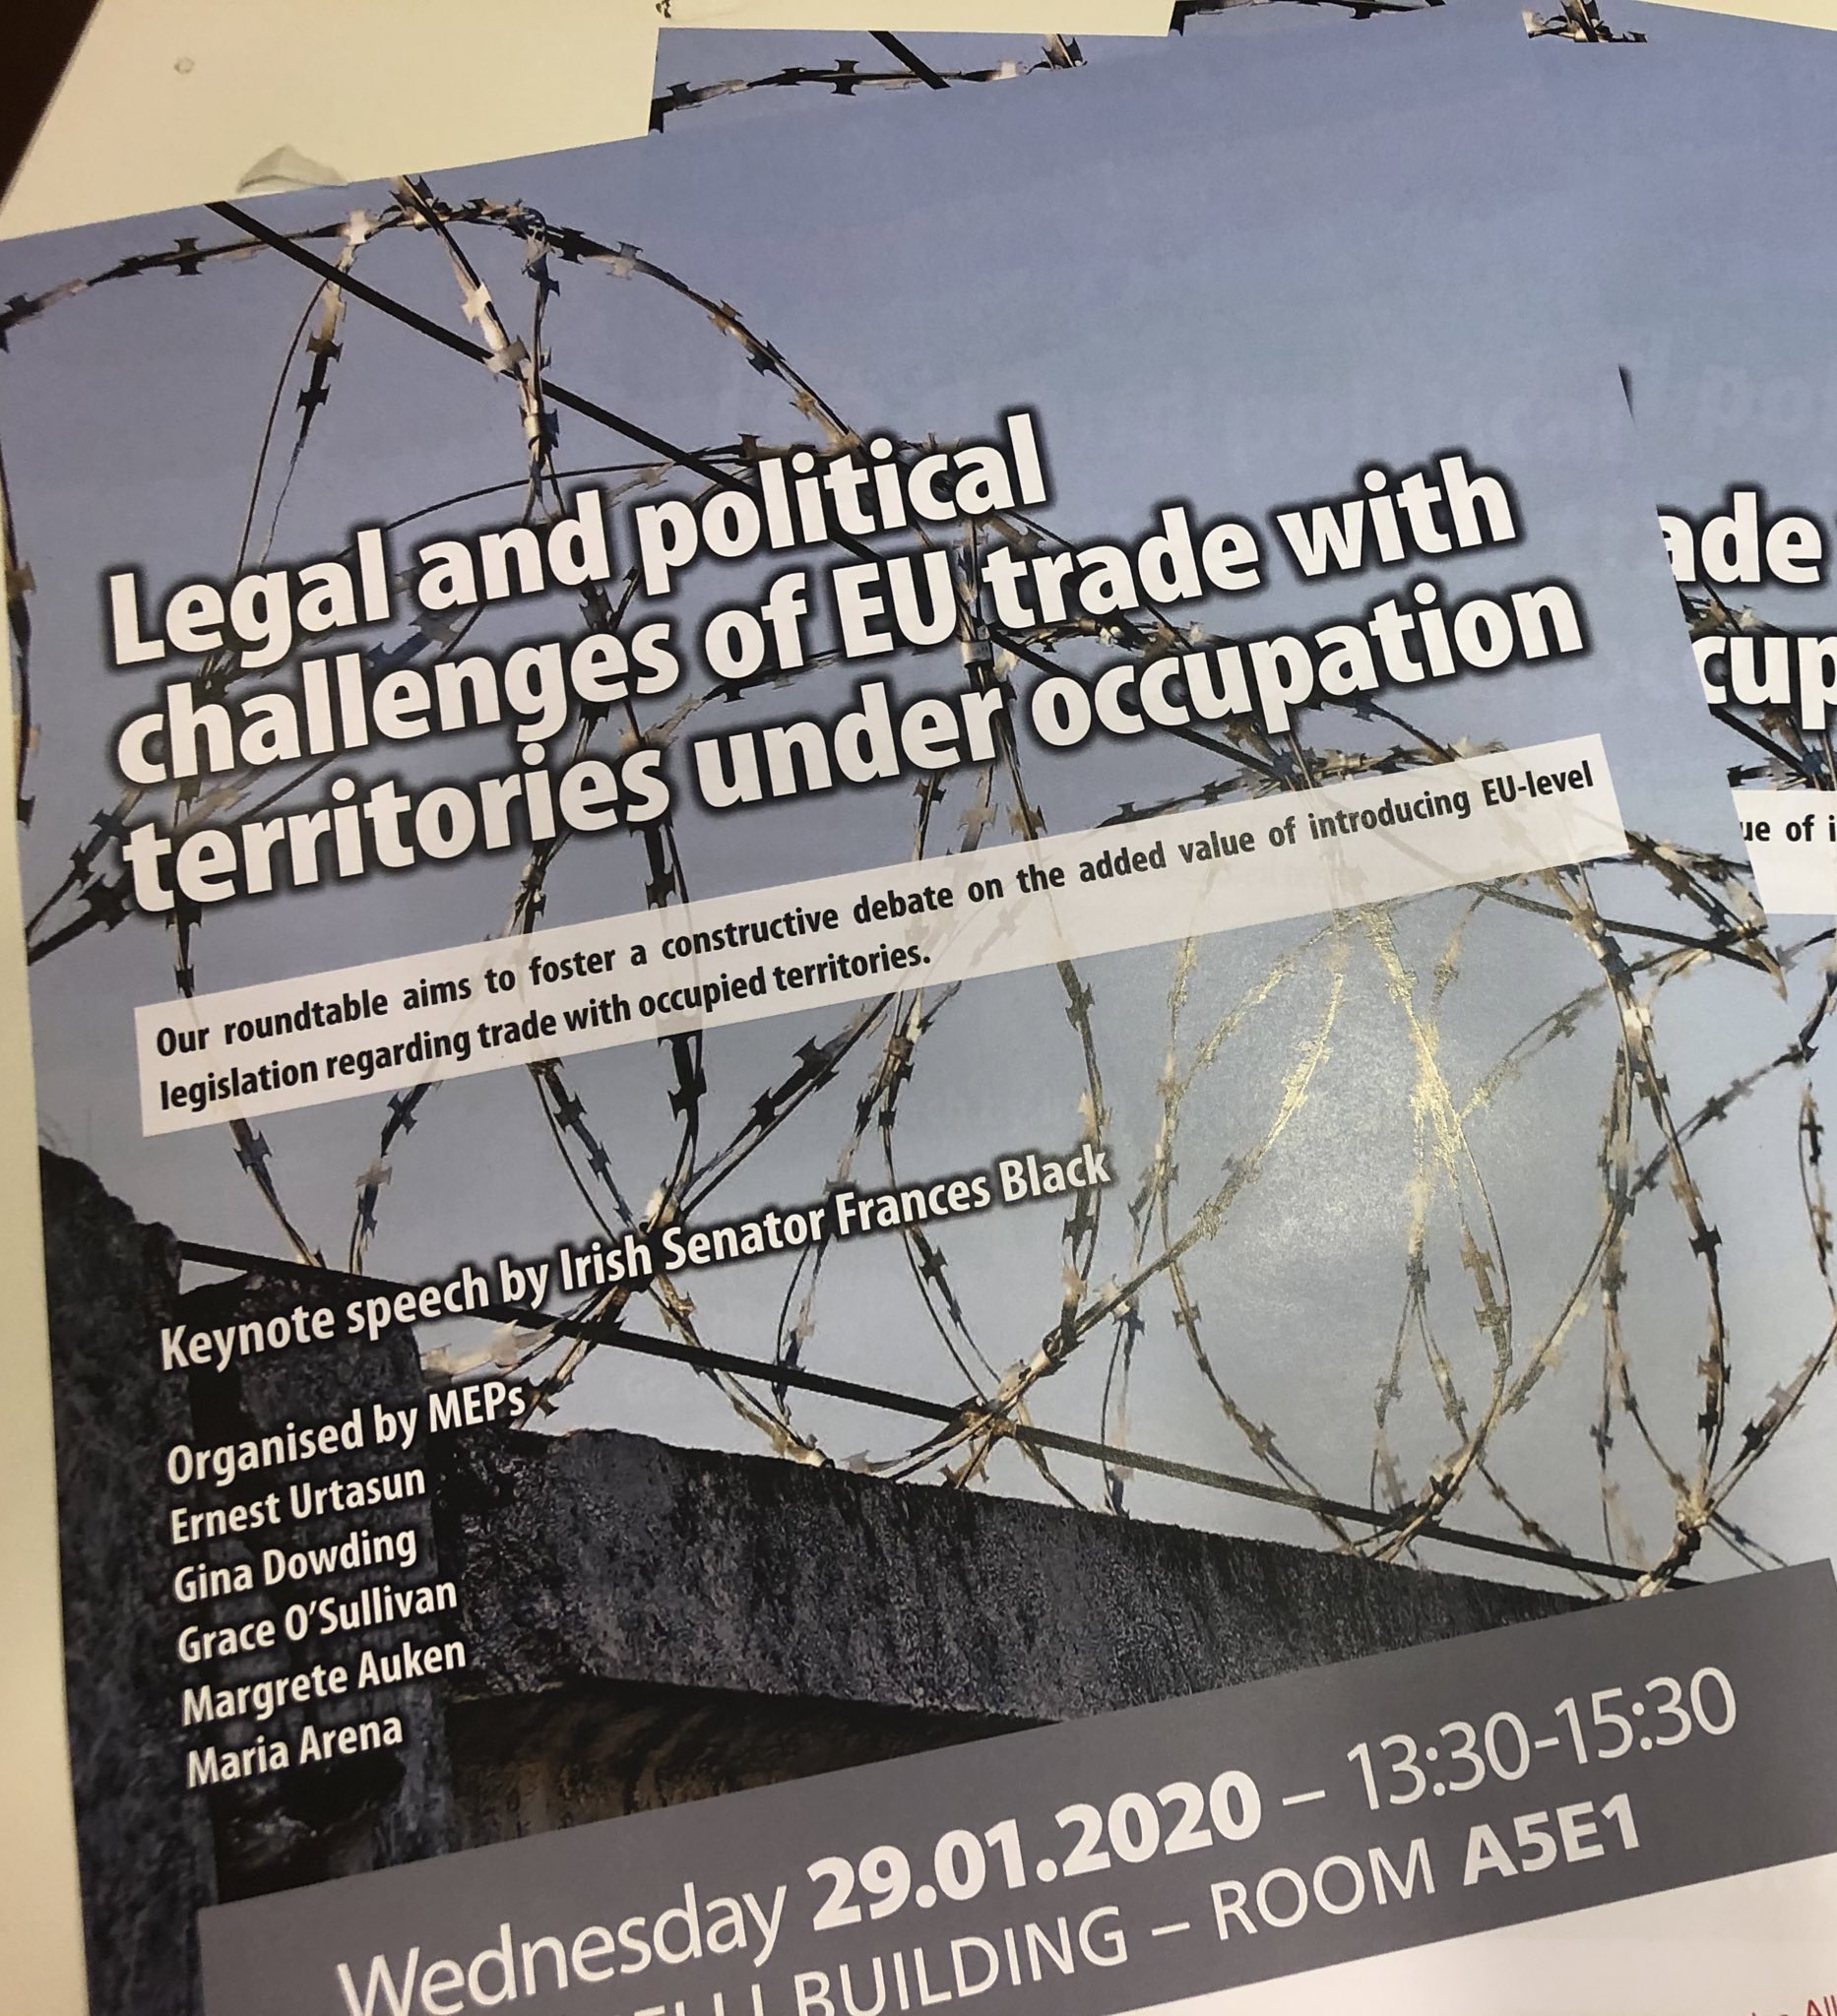 MEPs Urge Commission to End Double Standards on Trade with Occupied Territories